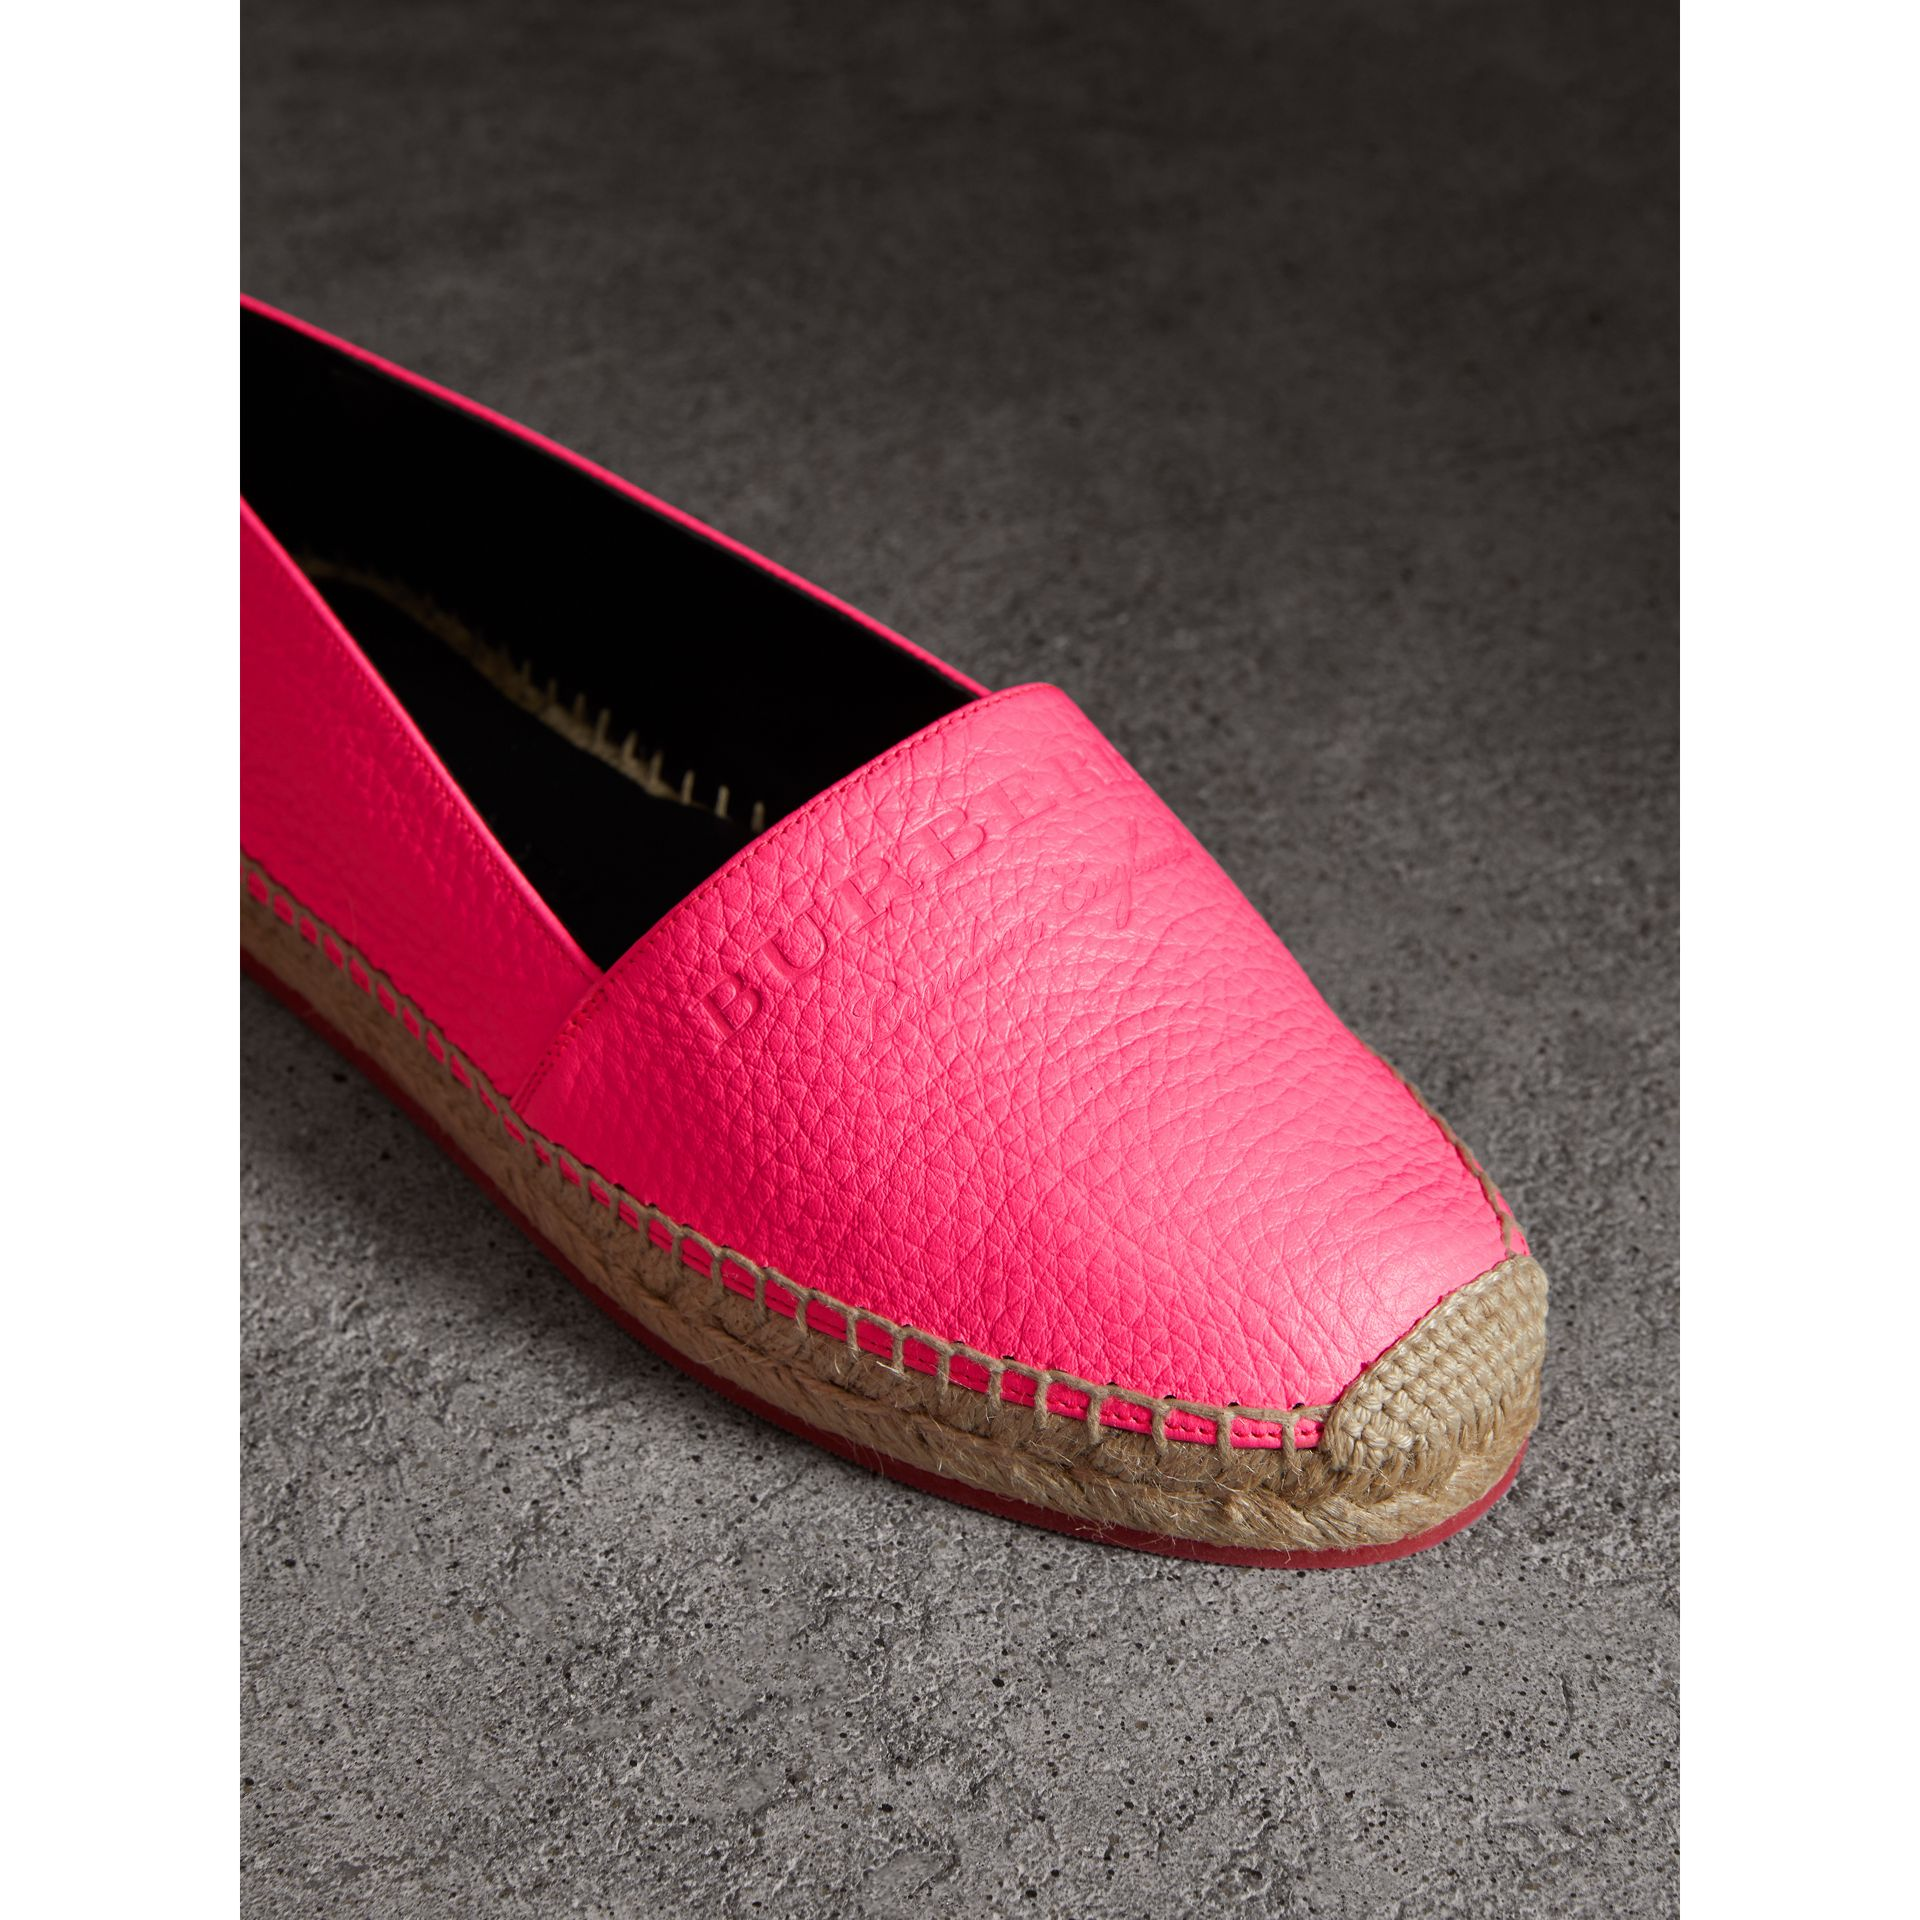 Embossed Grainy Leather Espadrilles in Neon Pink - Women | Burberry United States - gallery image 1